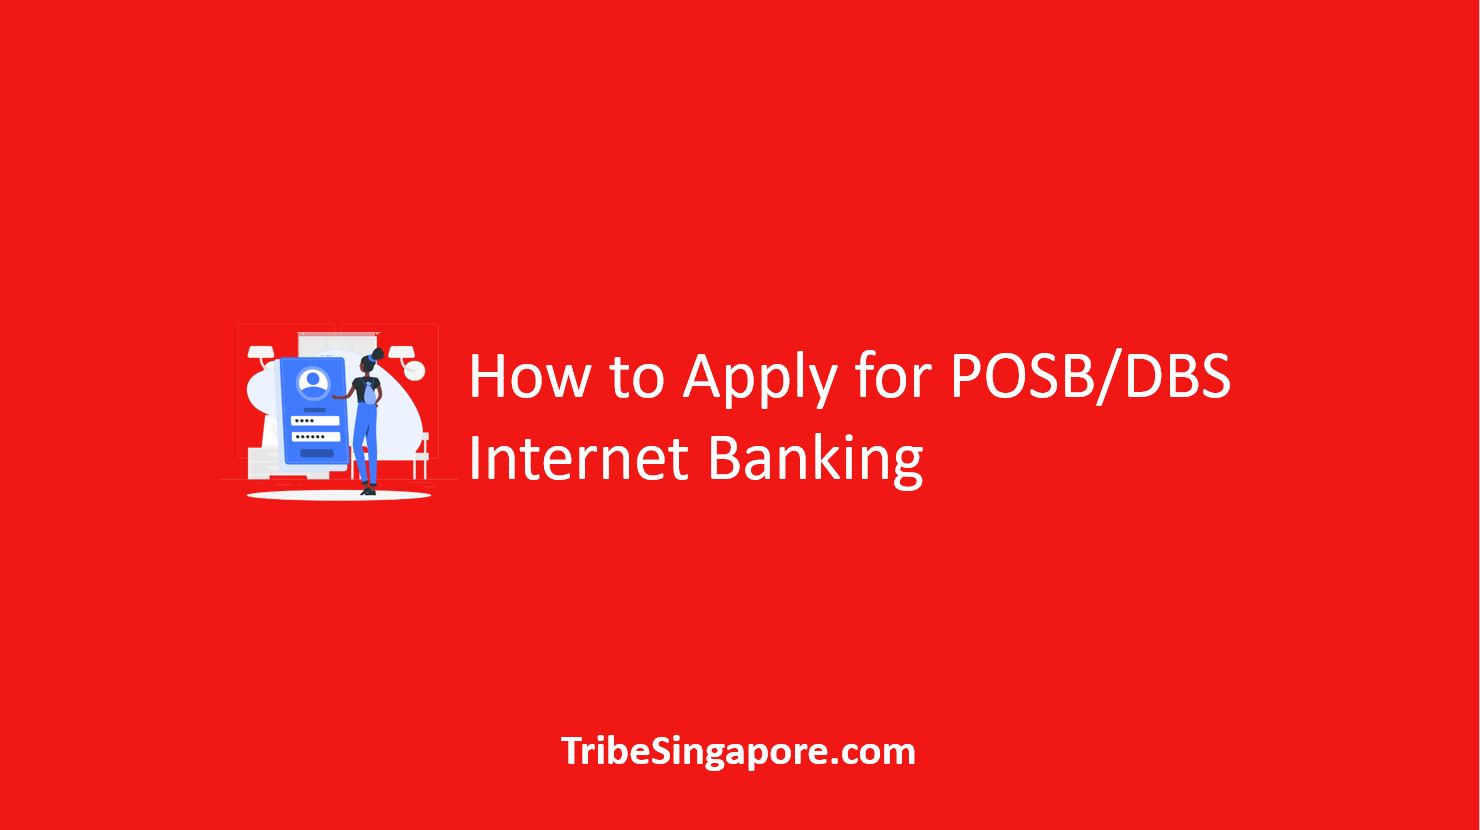 How to Apply for POSB/DBS Internet Banking